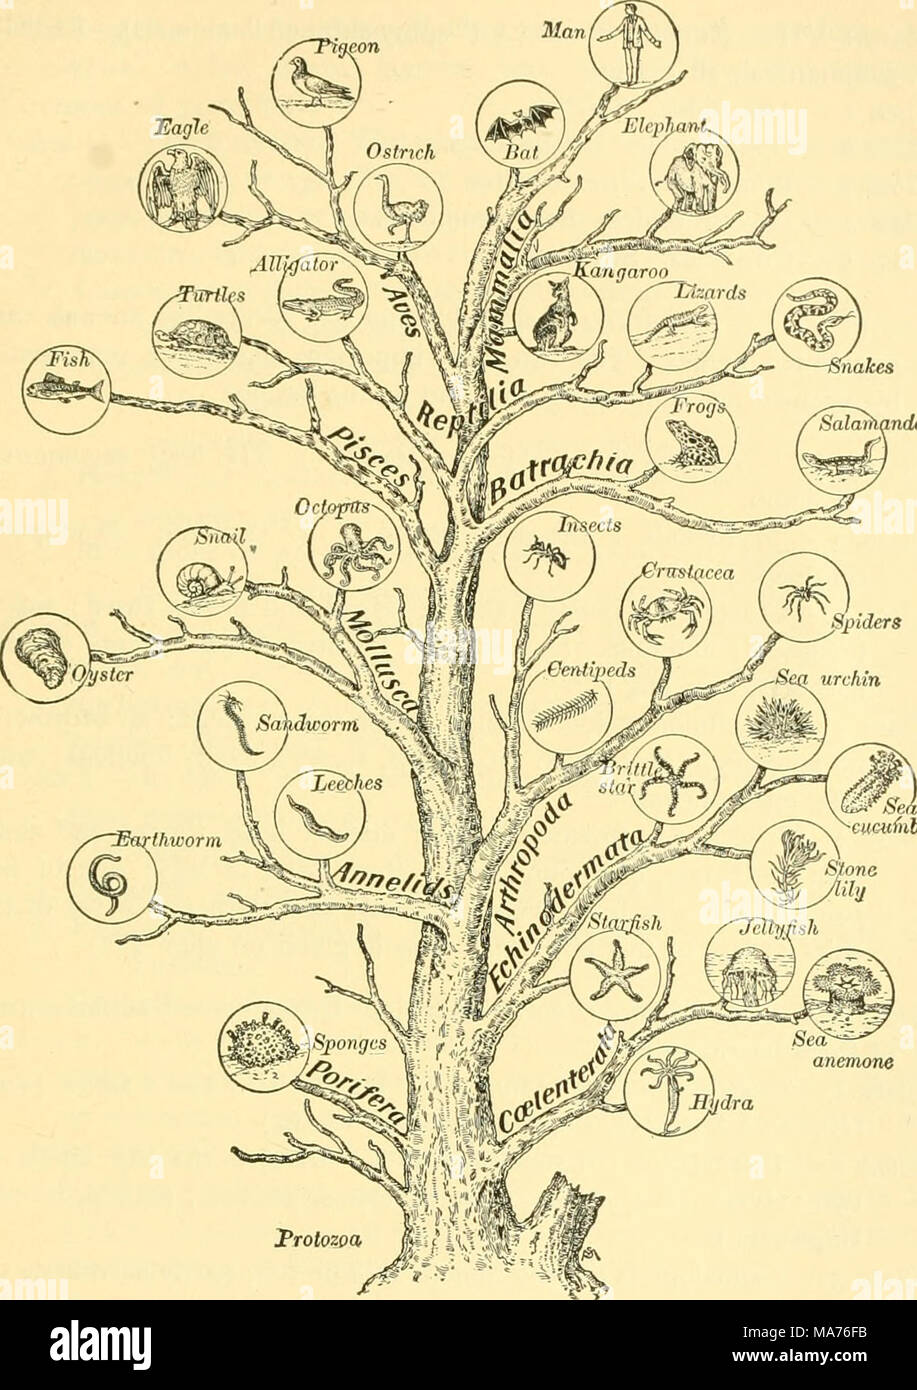 medium resolution of  elementary biology an introduction to the science of life cixcuinhet fig 252 genealogical tree of animal life this diagram is intended to suggest the